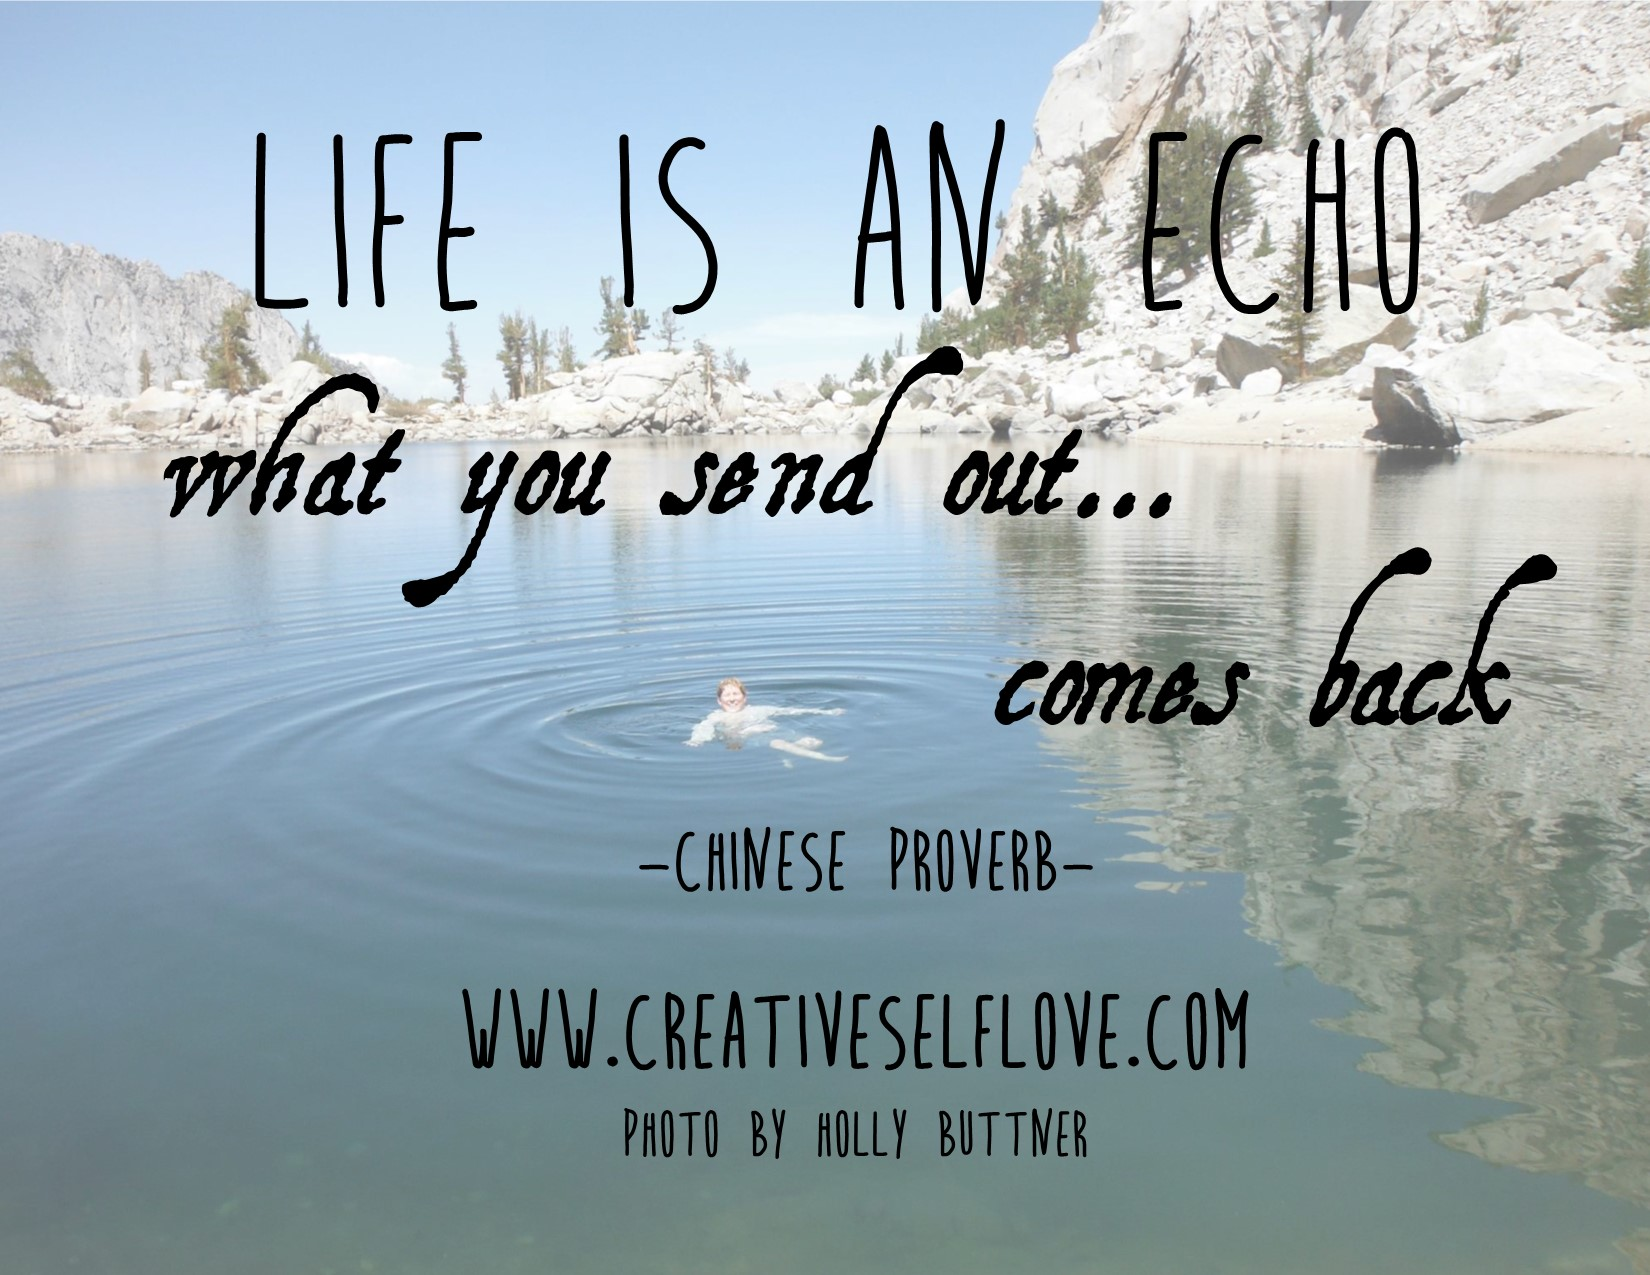 3.4 Life is An Echo – Graphics by author; photo: Holly Buttner © 2015, by permission